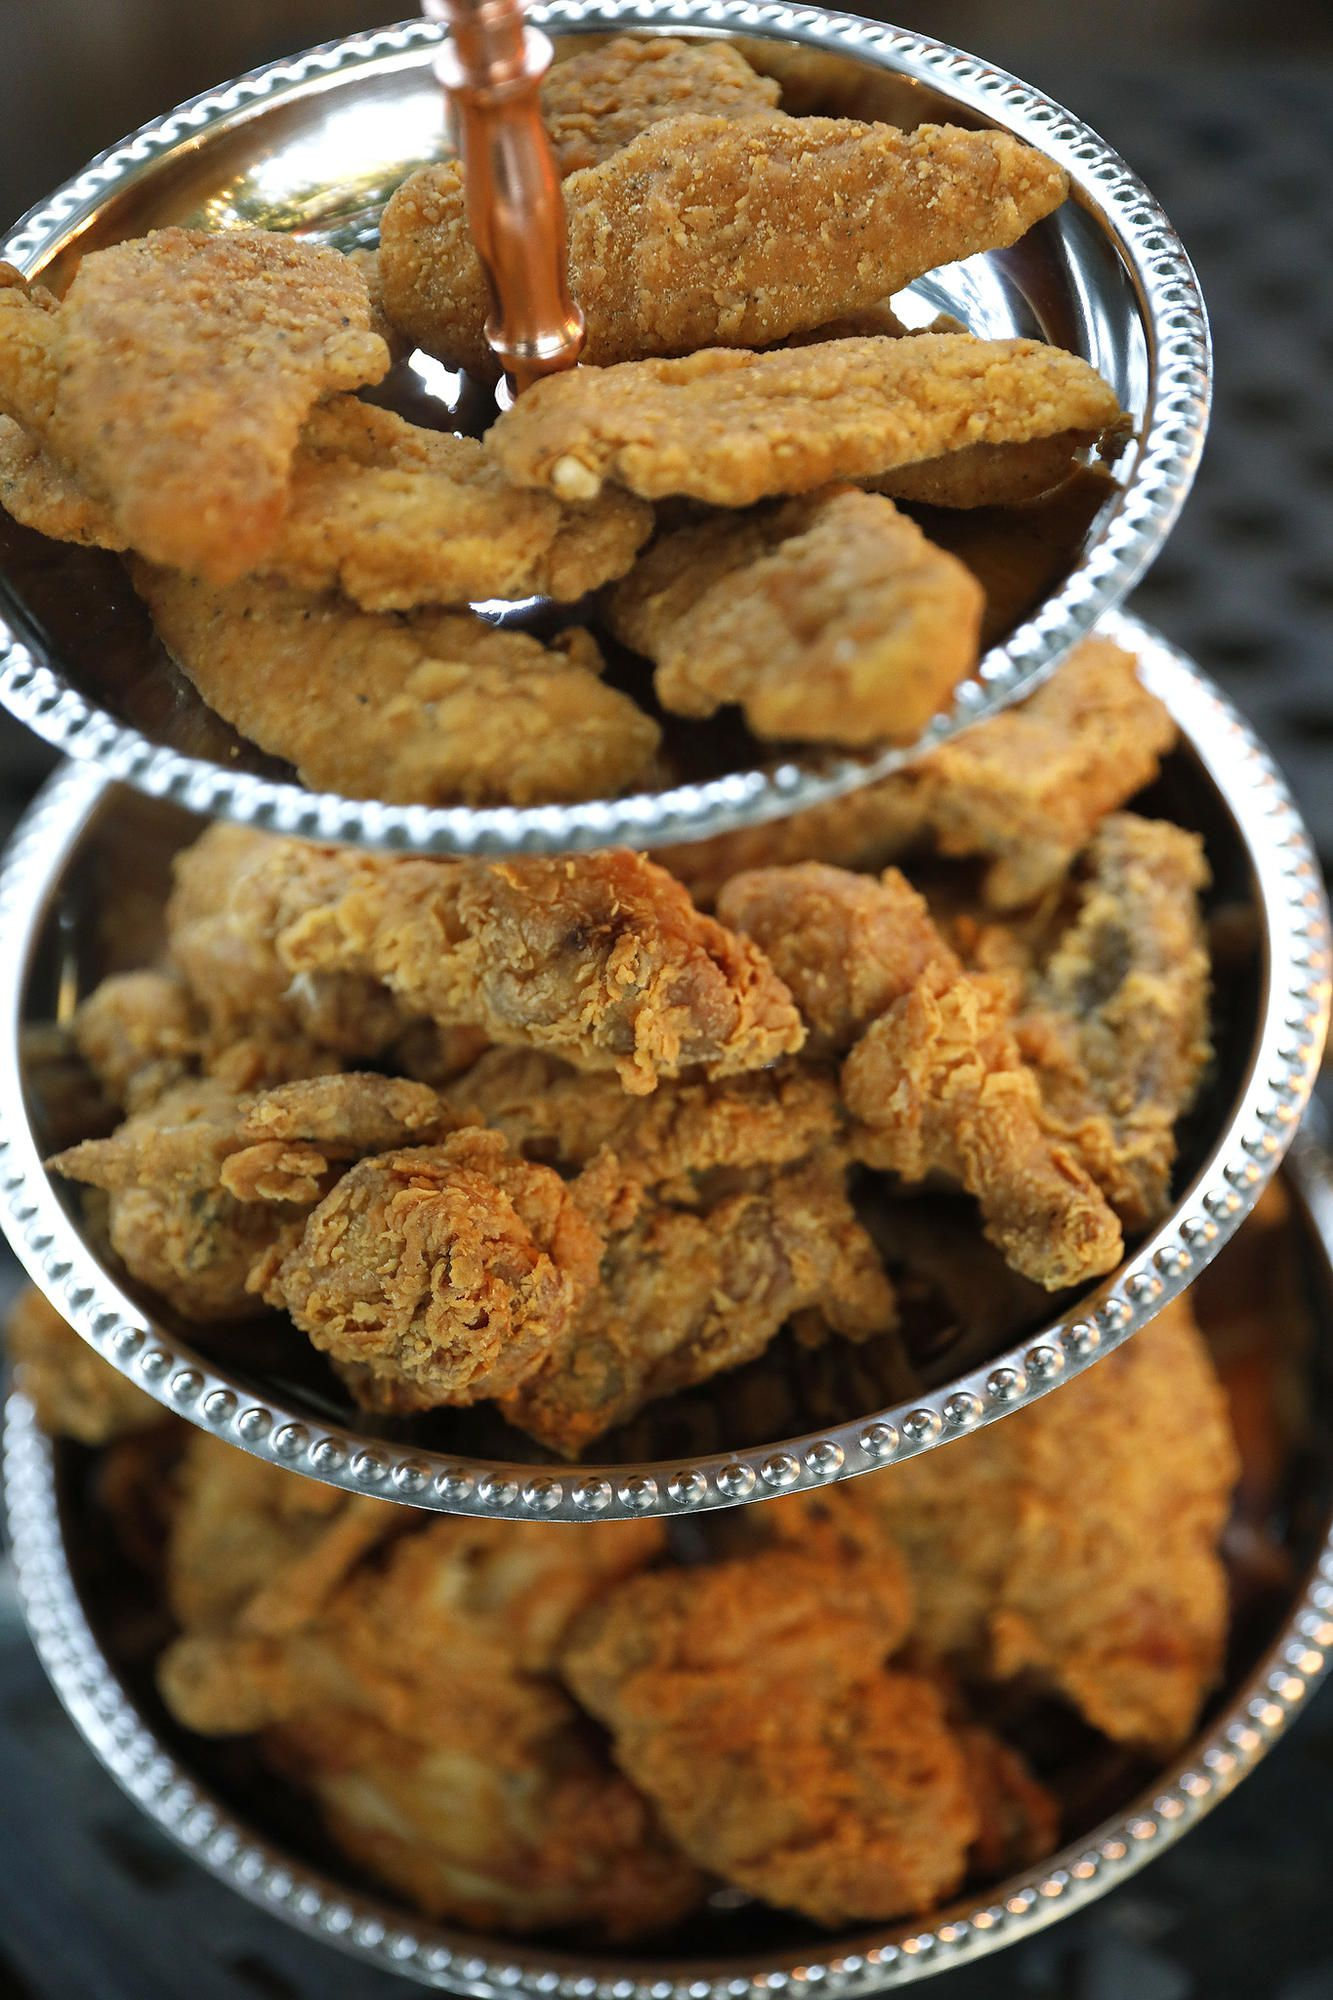 Entertaining: How to throw a fried chicken party | Party ...